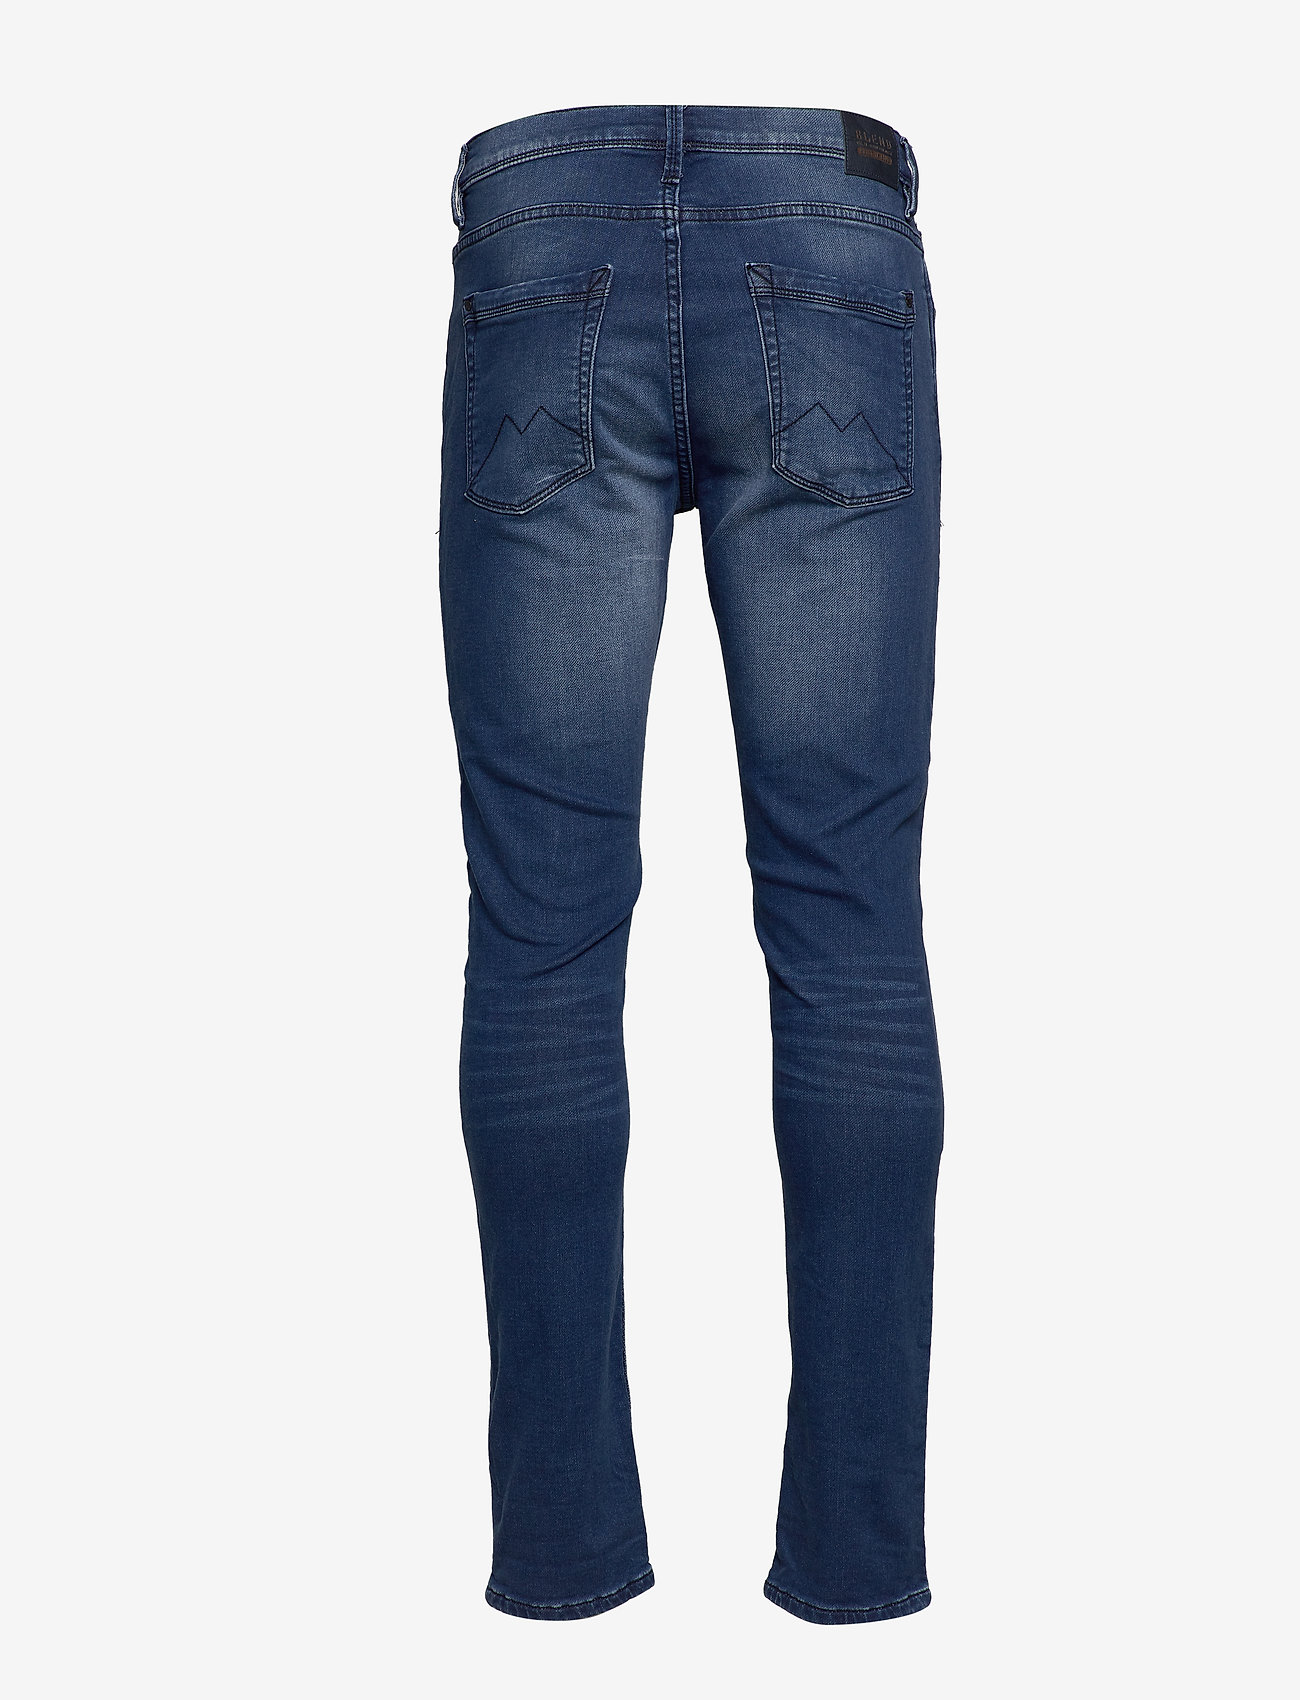 Blend - Jet Fit Jogg - NOOS Jeans - slim jeans - denim middle blue - 1